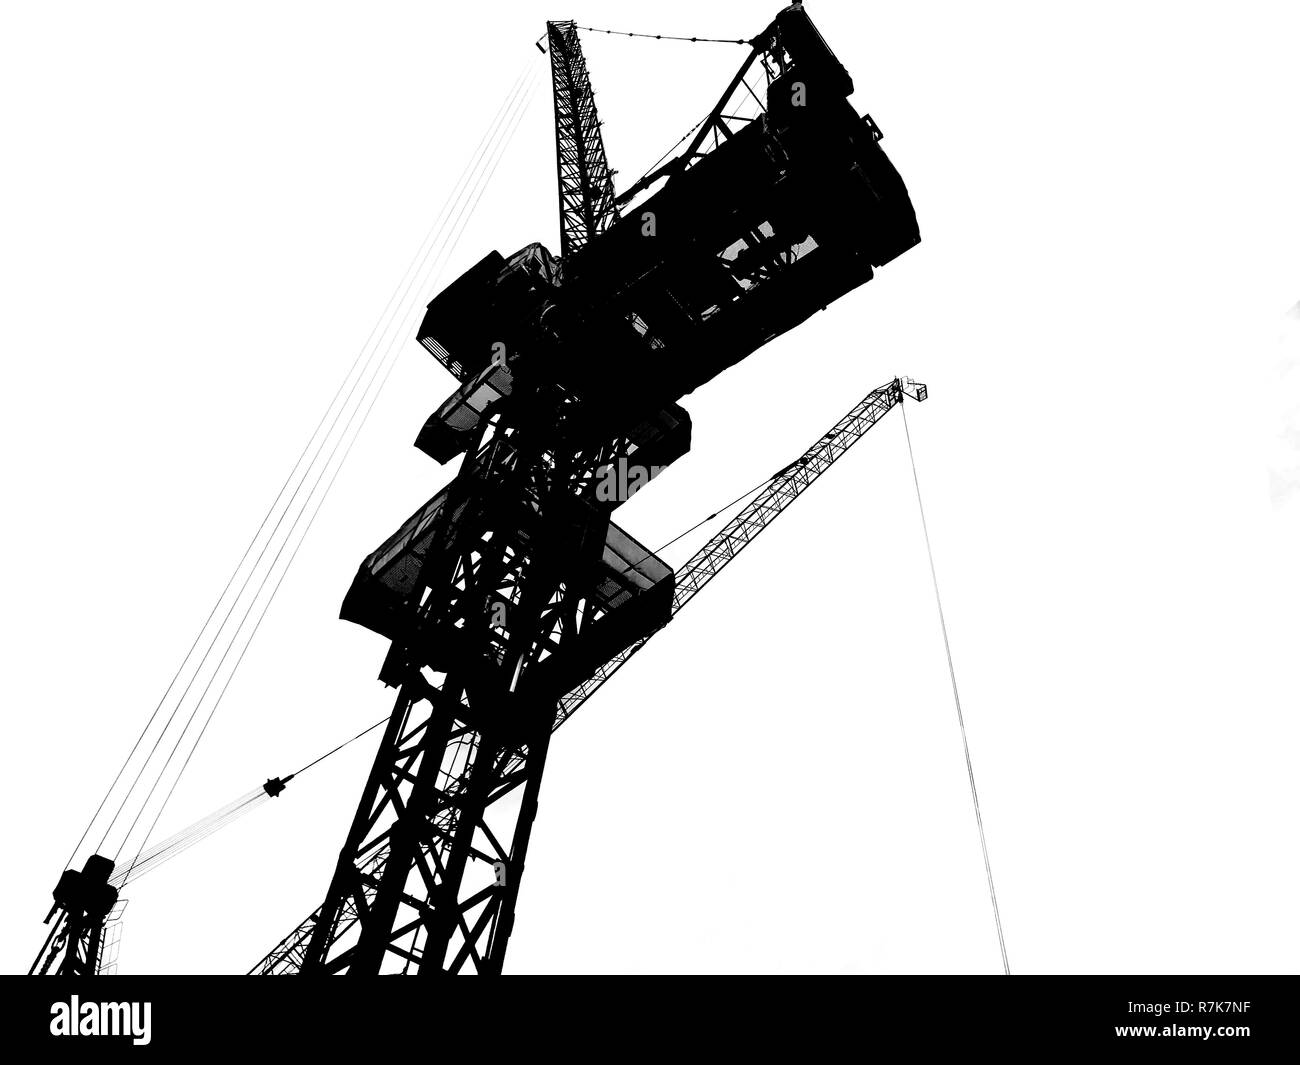 Construction tower crane silhouette isolated on white background. Construction Industry, Transportation Industry, Engineering Tool and Industrial Equi - Stock Image